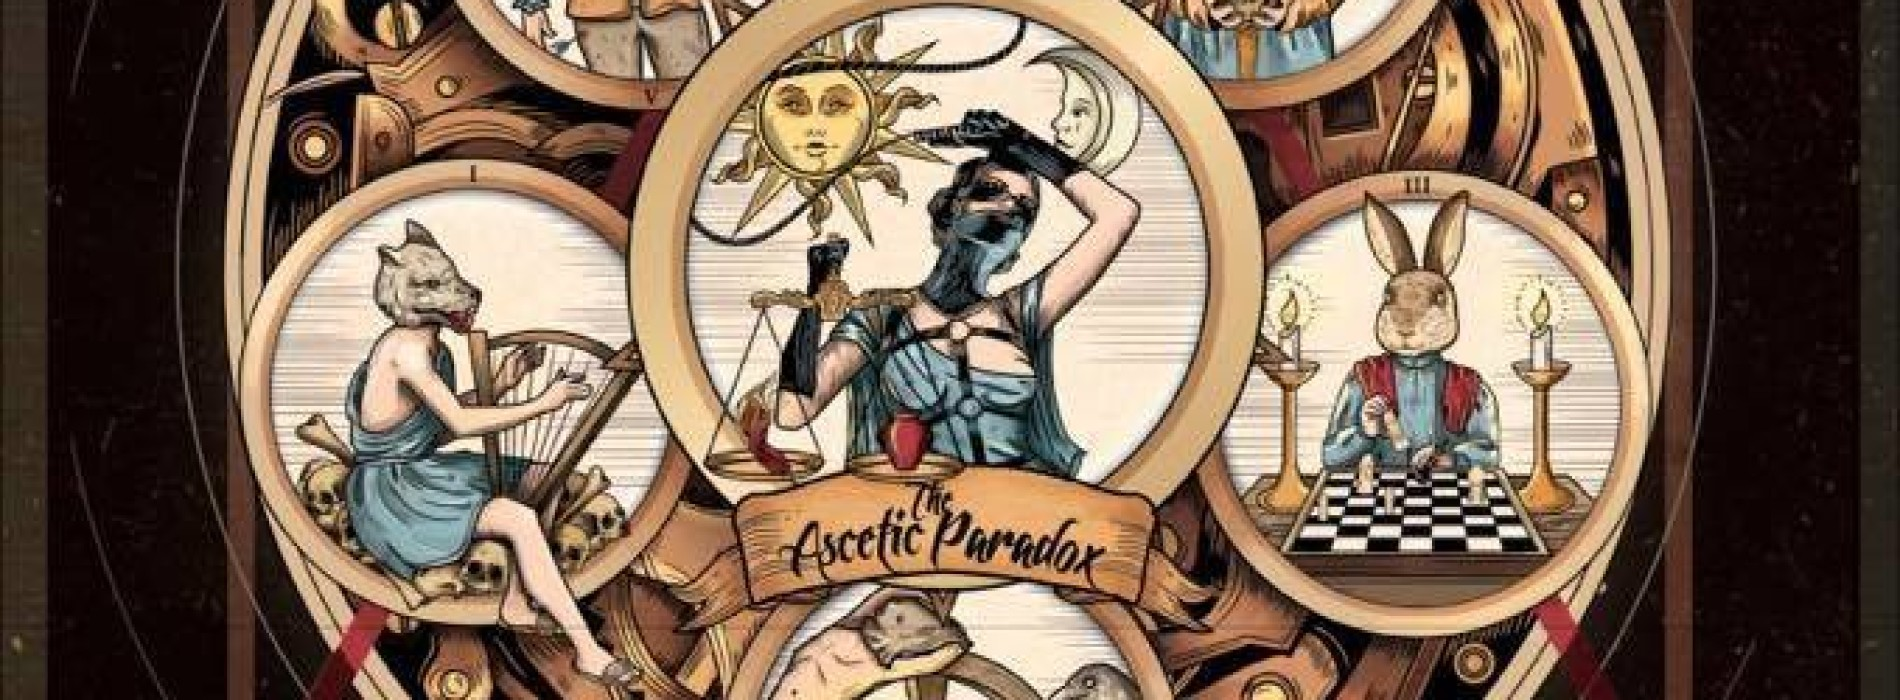 The Ascetic Paradox Album Launch : A Review By Eshantha Perera